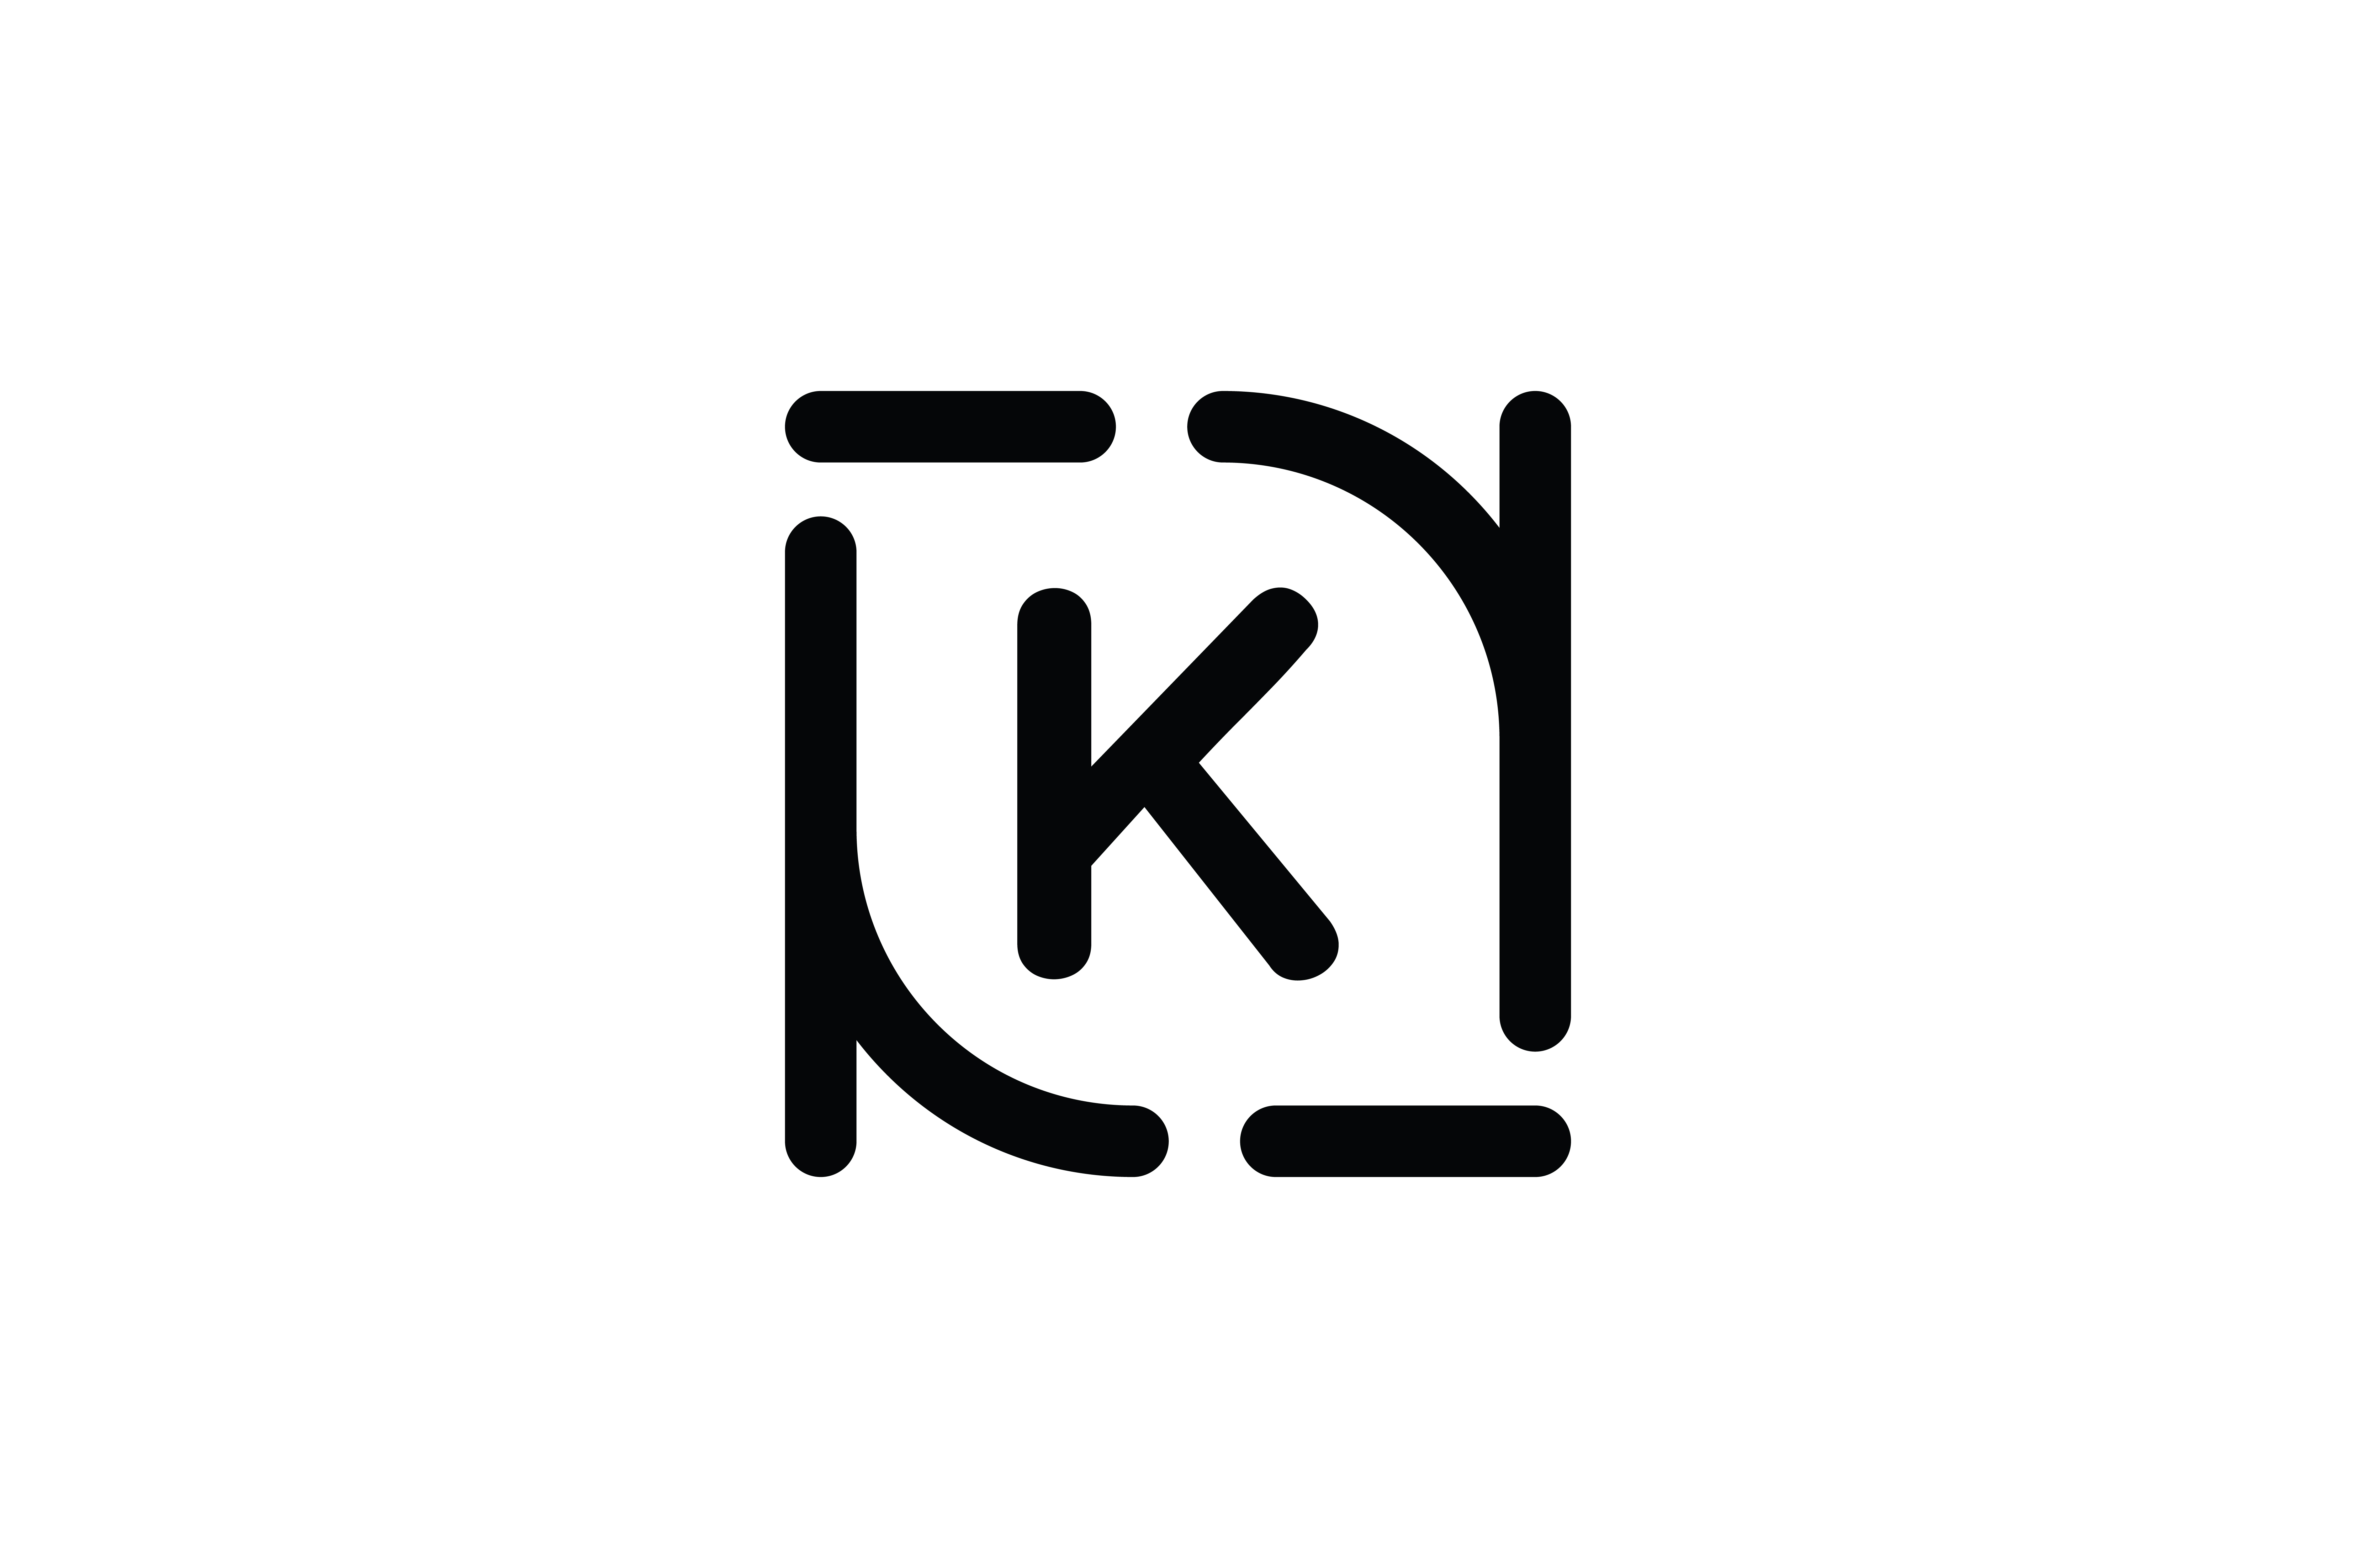 Download Free Button K On The Keyboard Icon Graphic By Newicon Creative Fabrica for Cricut Explore, Silhouette and other cutting machines.